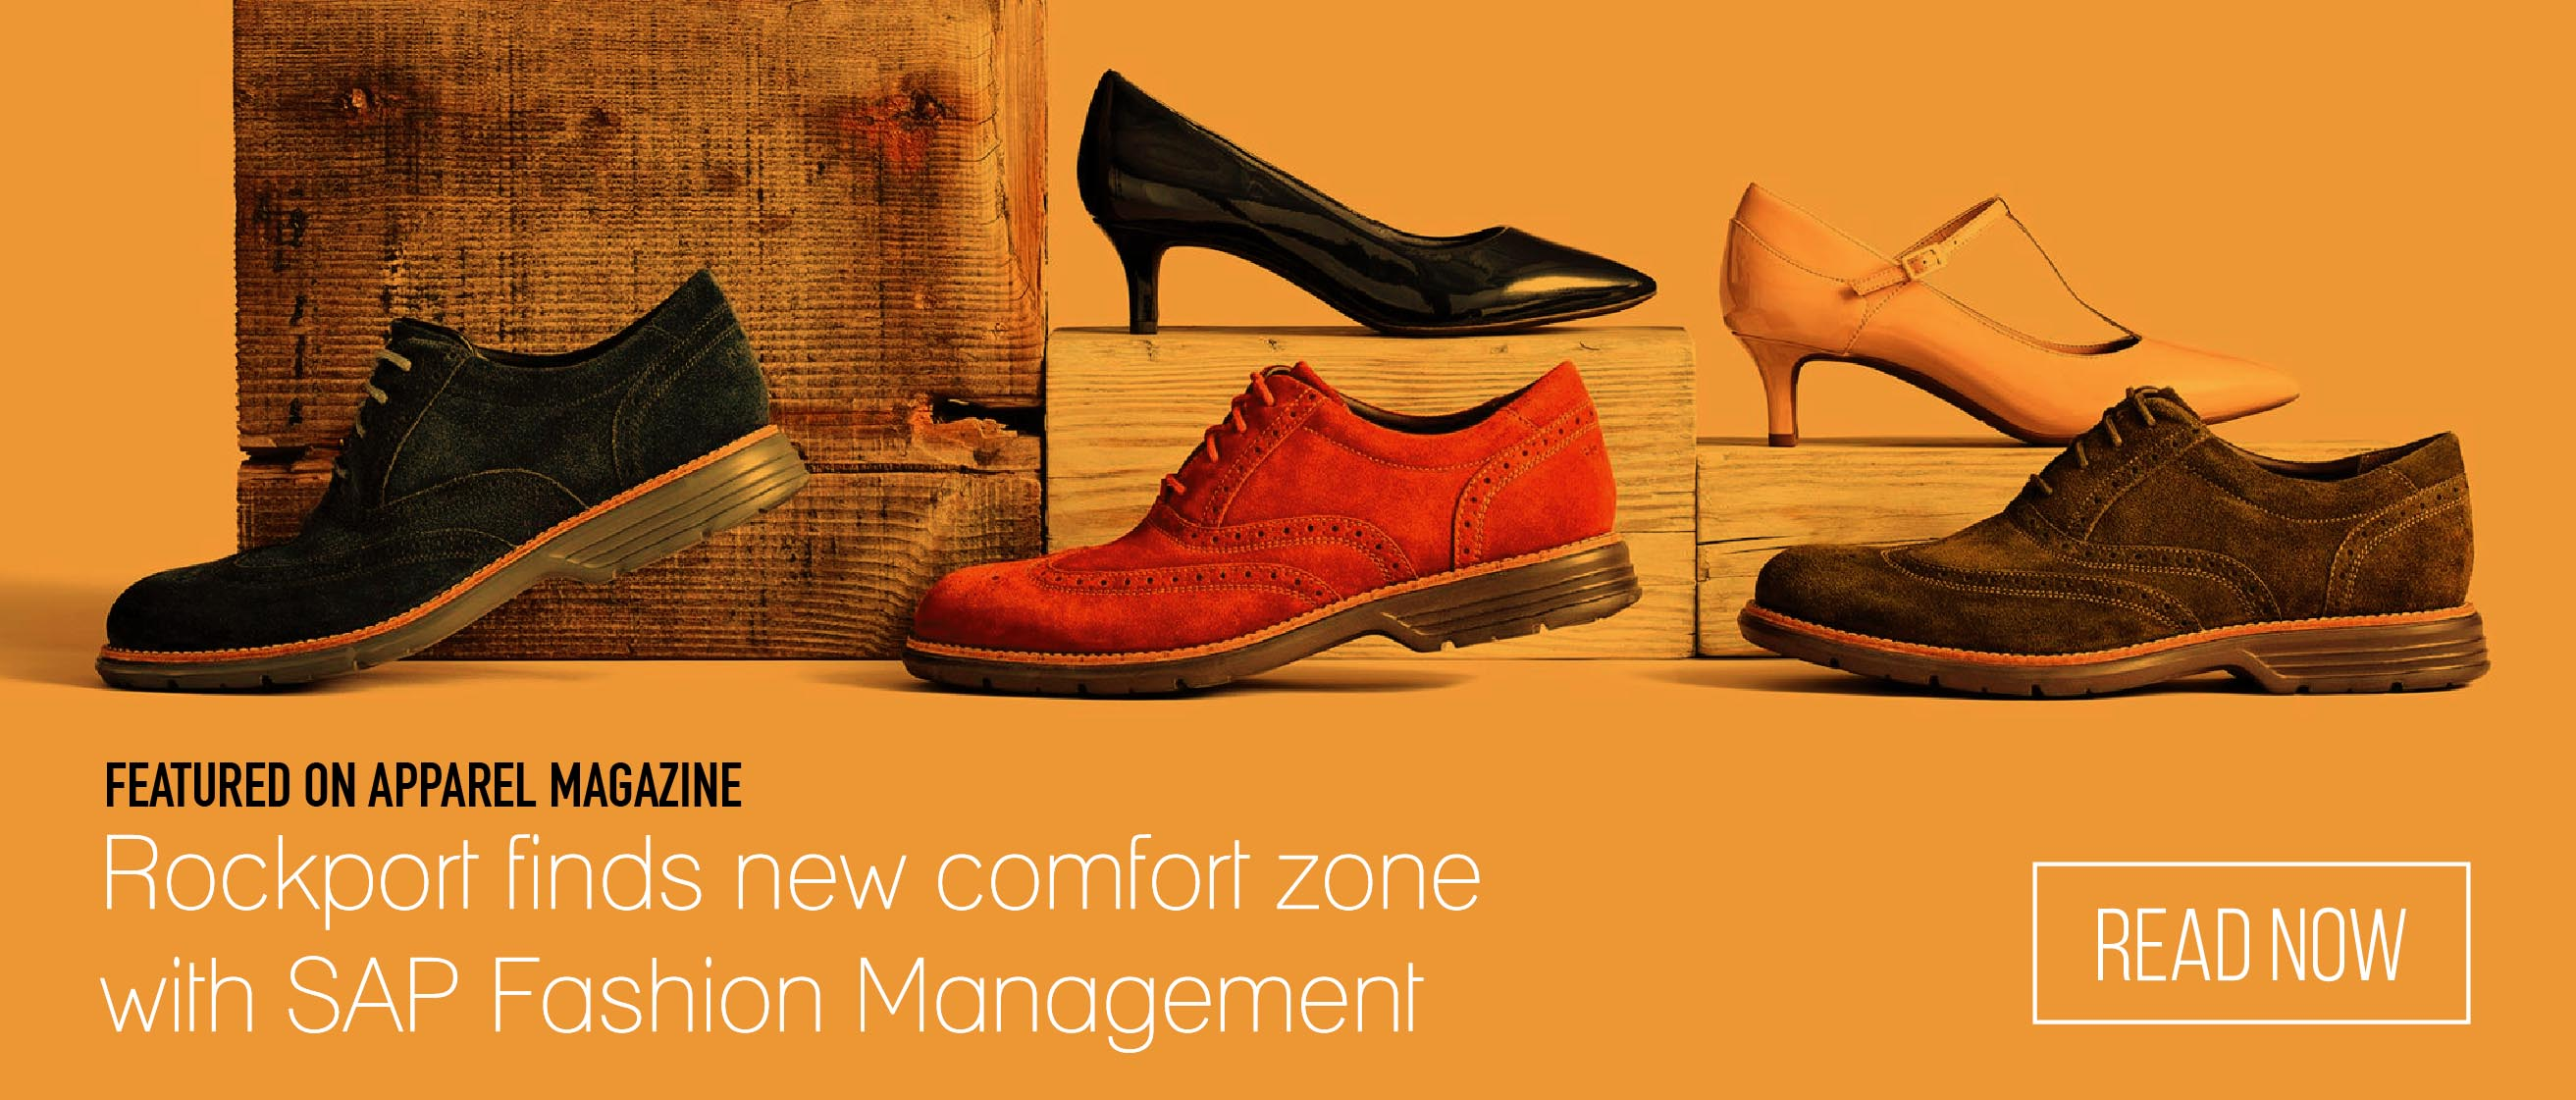 Rockport_finds_new_comfort_zone_with_SAP_FMS-01.jpg